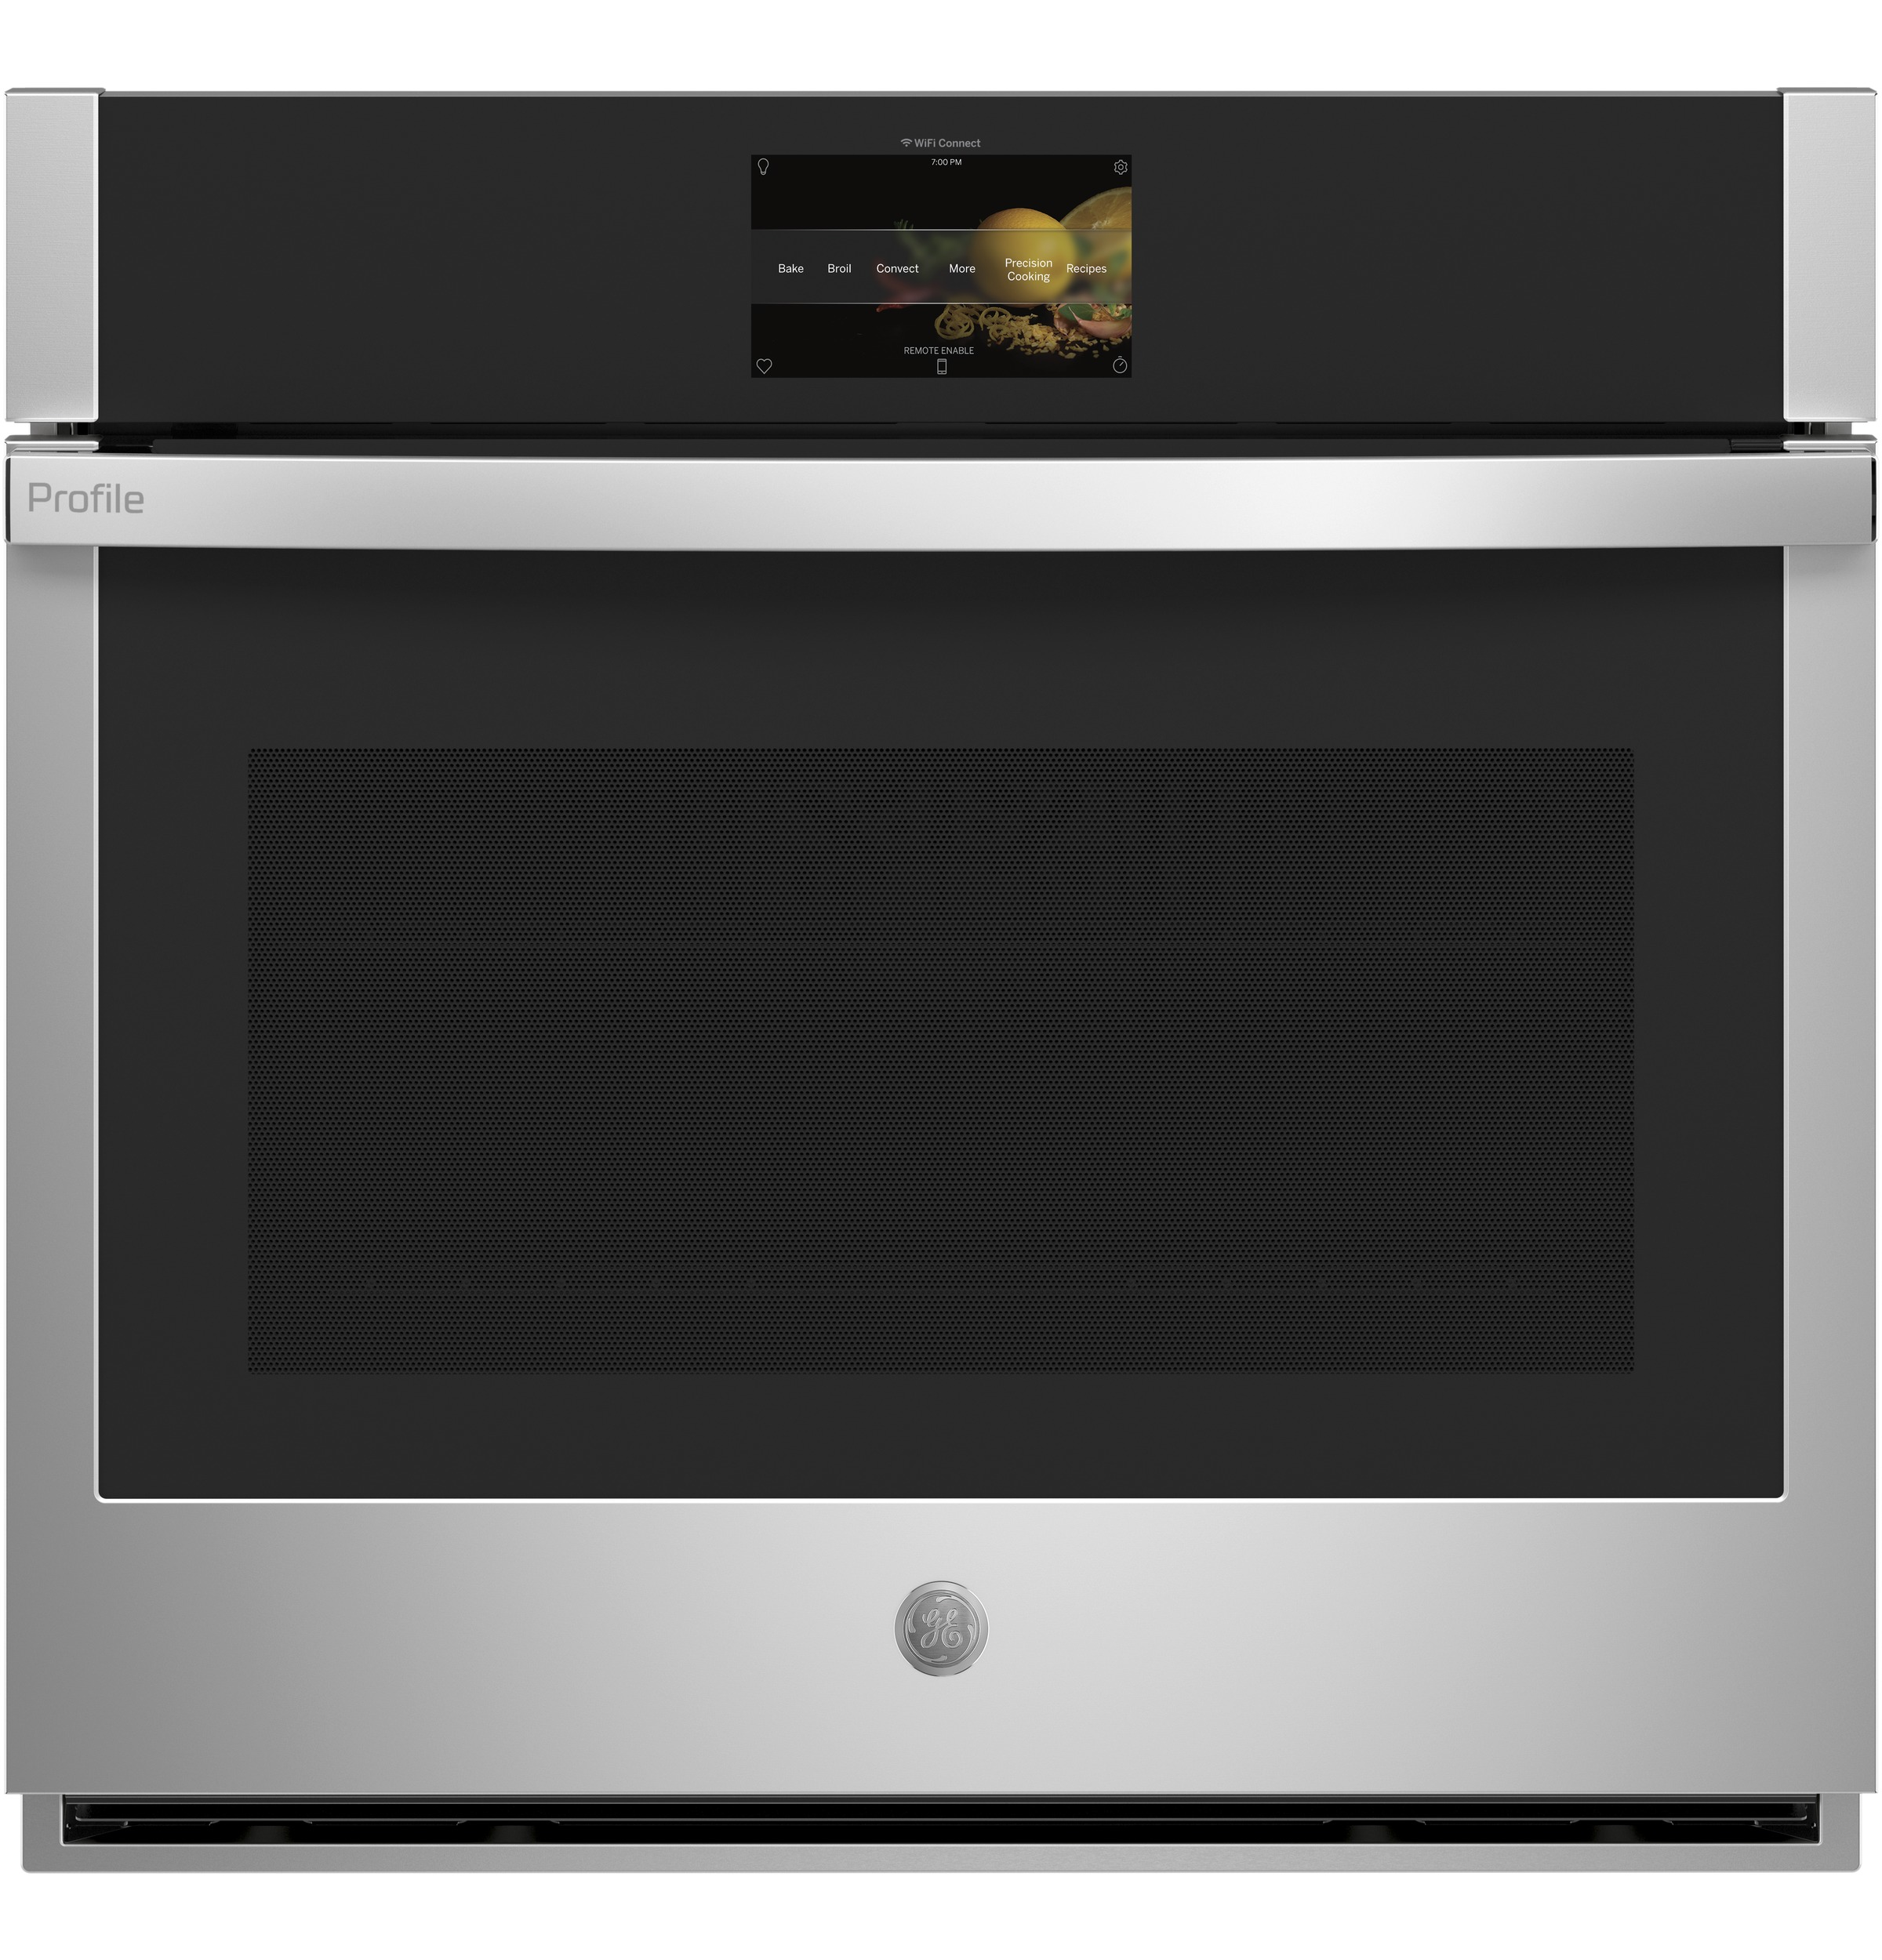 GE Appliances Wifi Connect Wall Ovens